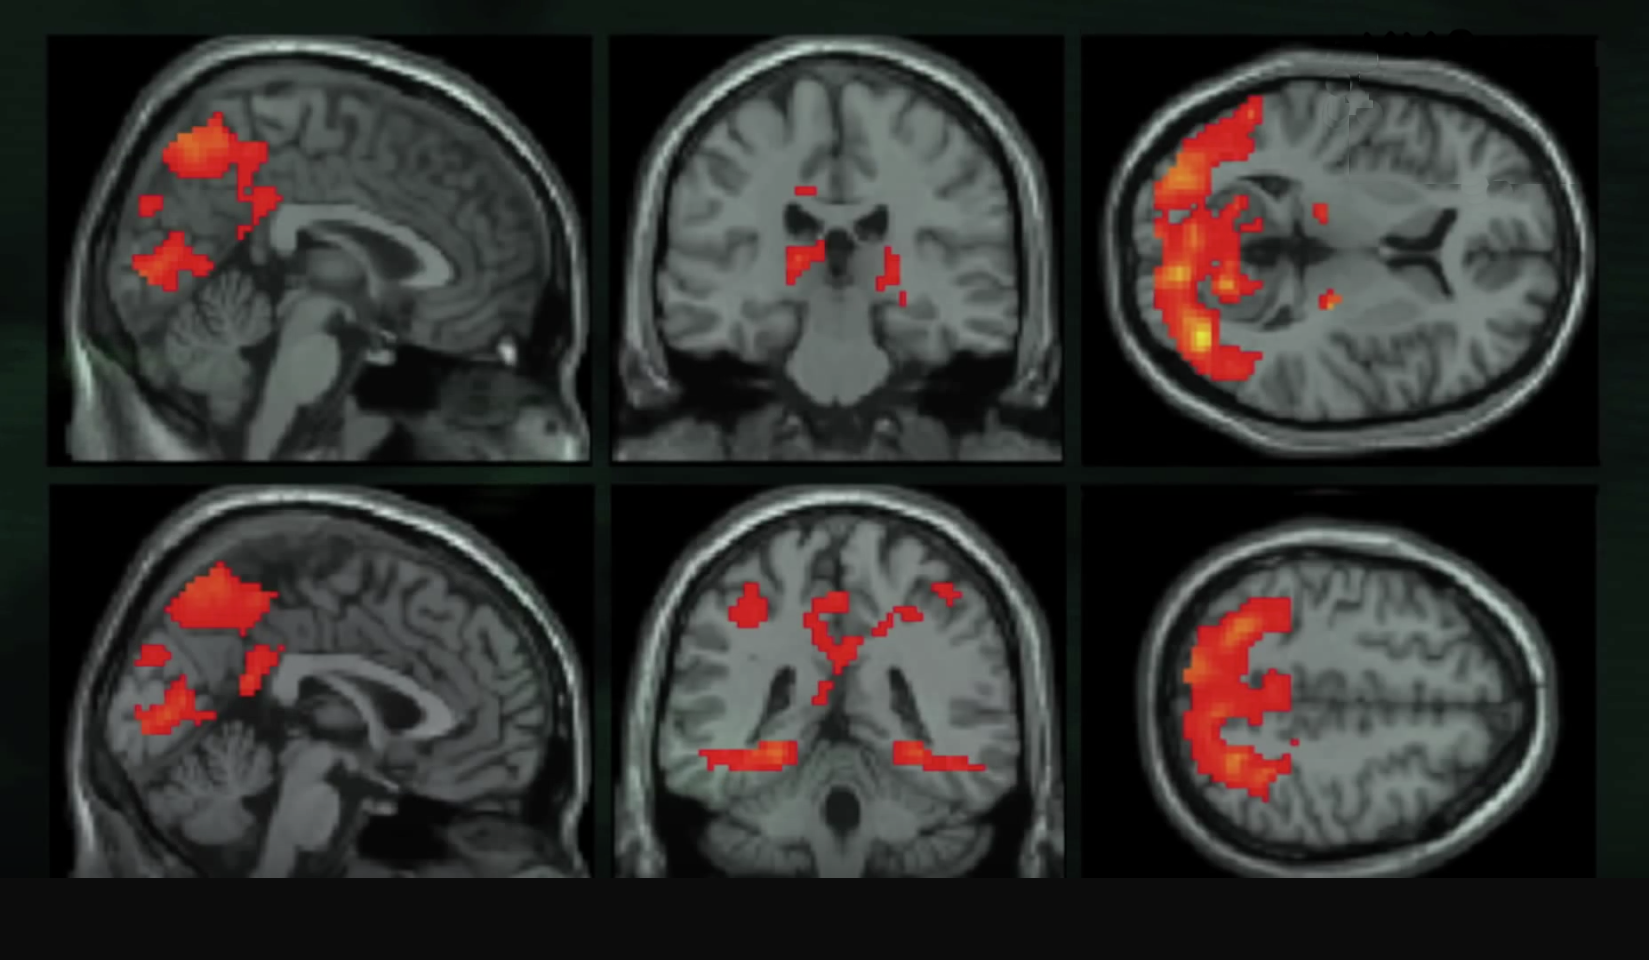 In Paul Zak's studies, functional brain imaging showed stimulation in areas related to understanding and empathy when participants viewed a story with a dramatic arc, as opposed to a straightforward reporting of events. Understanding and empathy engaged them in the story and motivated them to act.